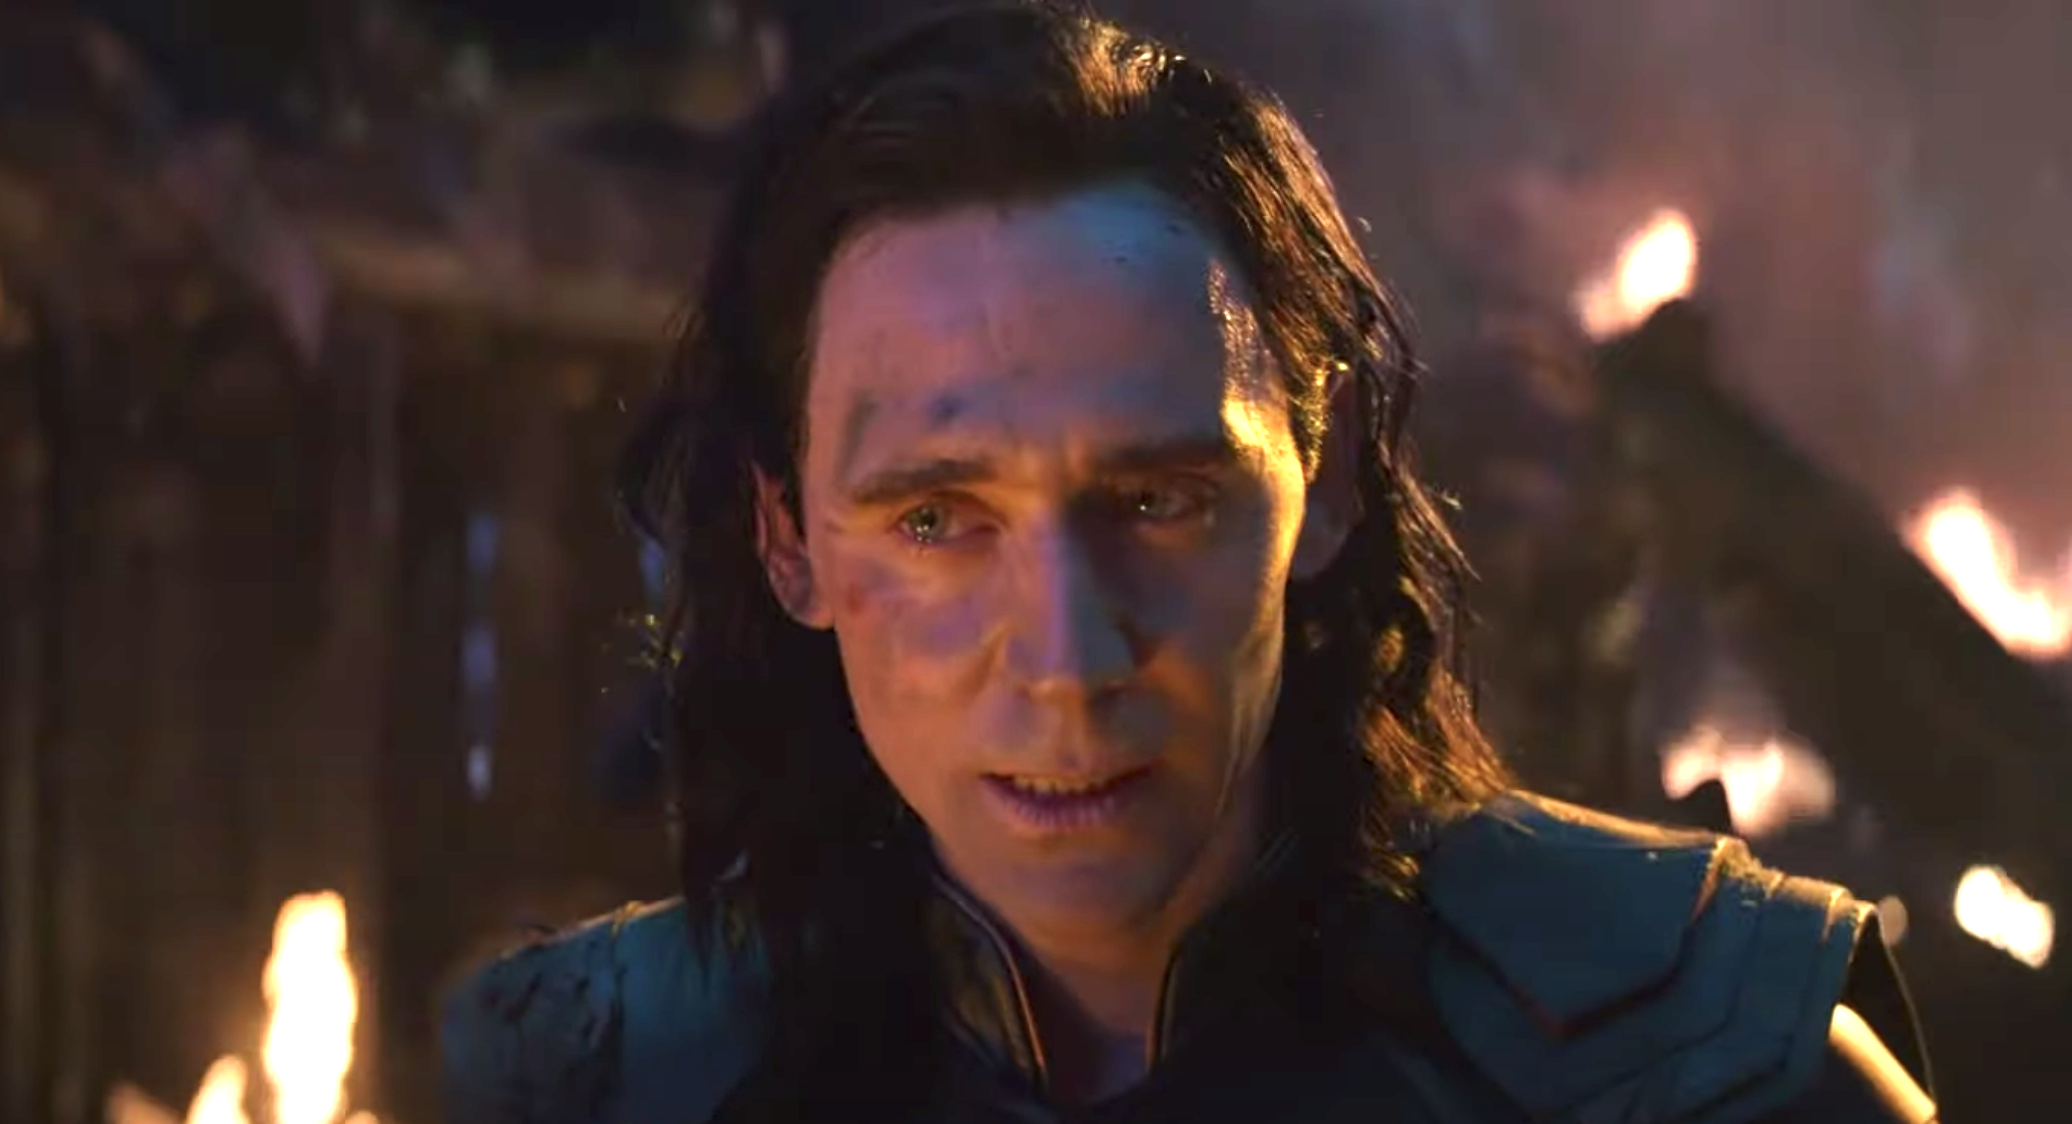 Loki's curls in Infinity War were well defined but barely visible